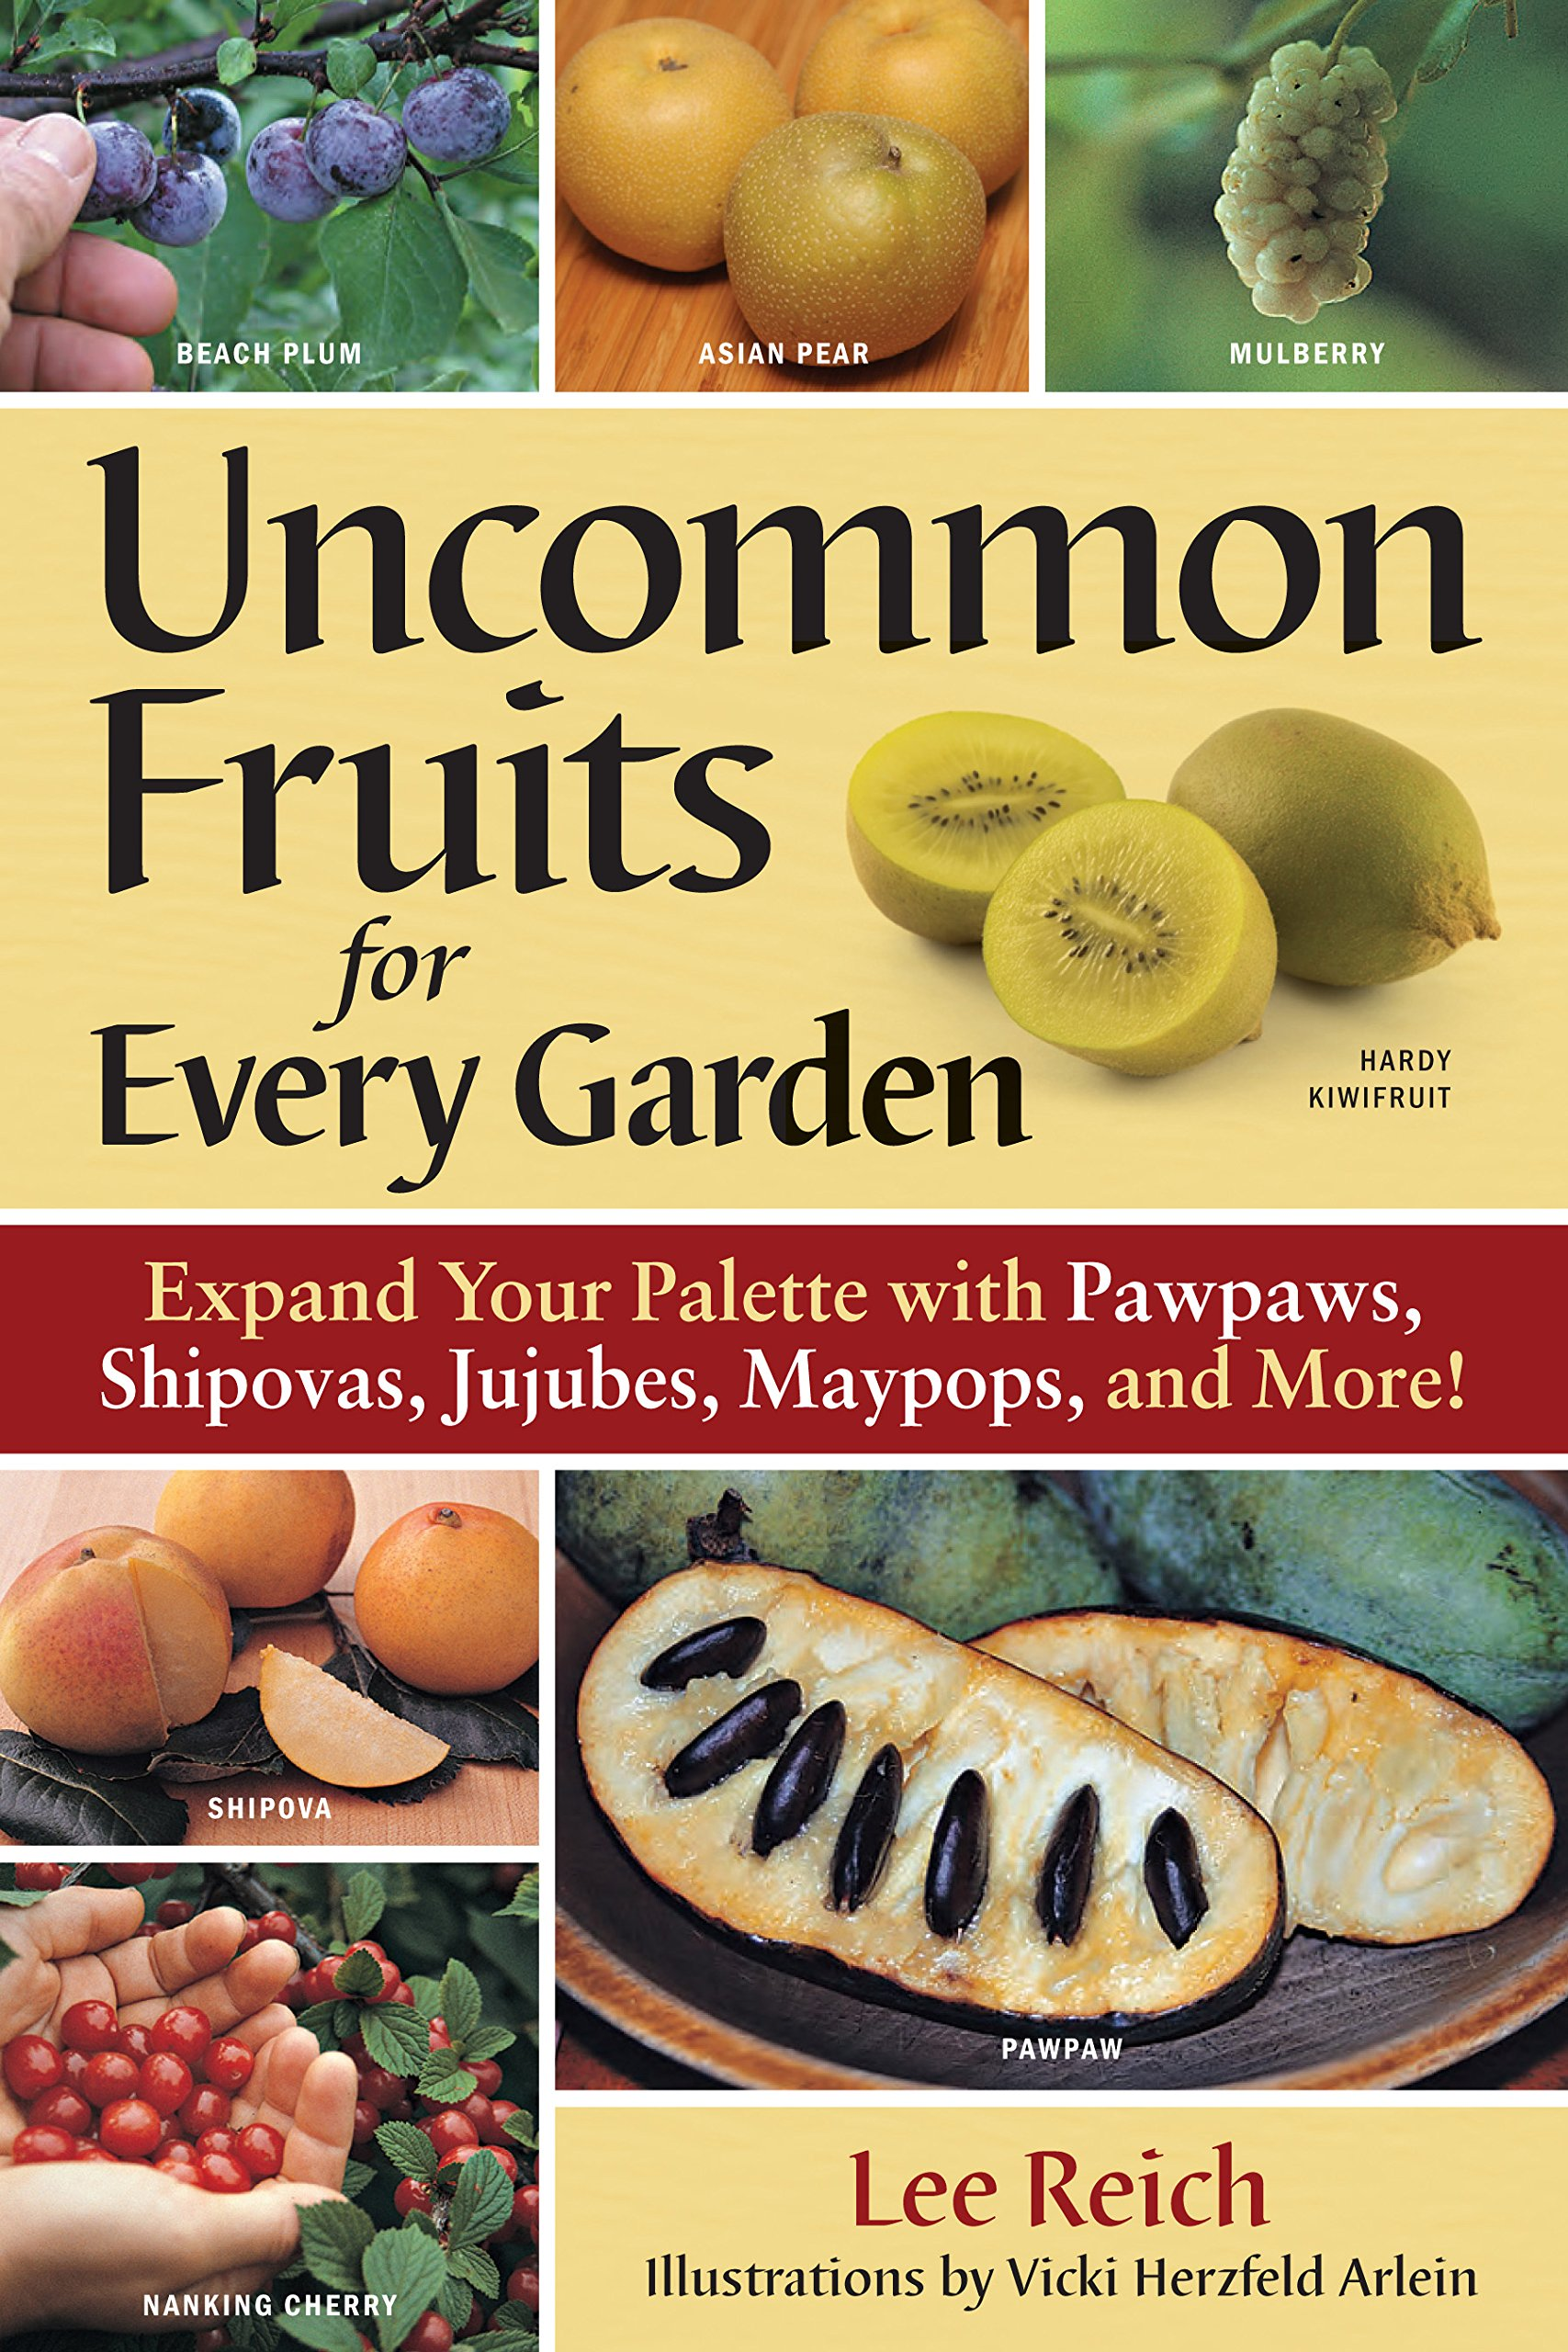 Uncommon Fruits for Every Garden: Lee Reich, Vicki Herzfeld Arlein ...